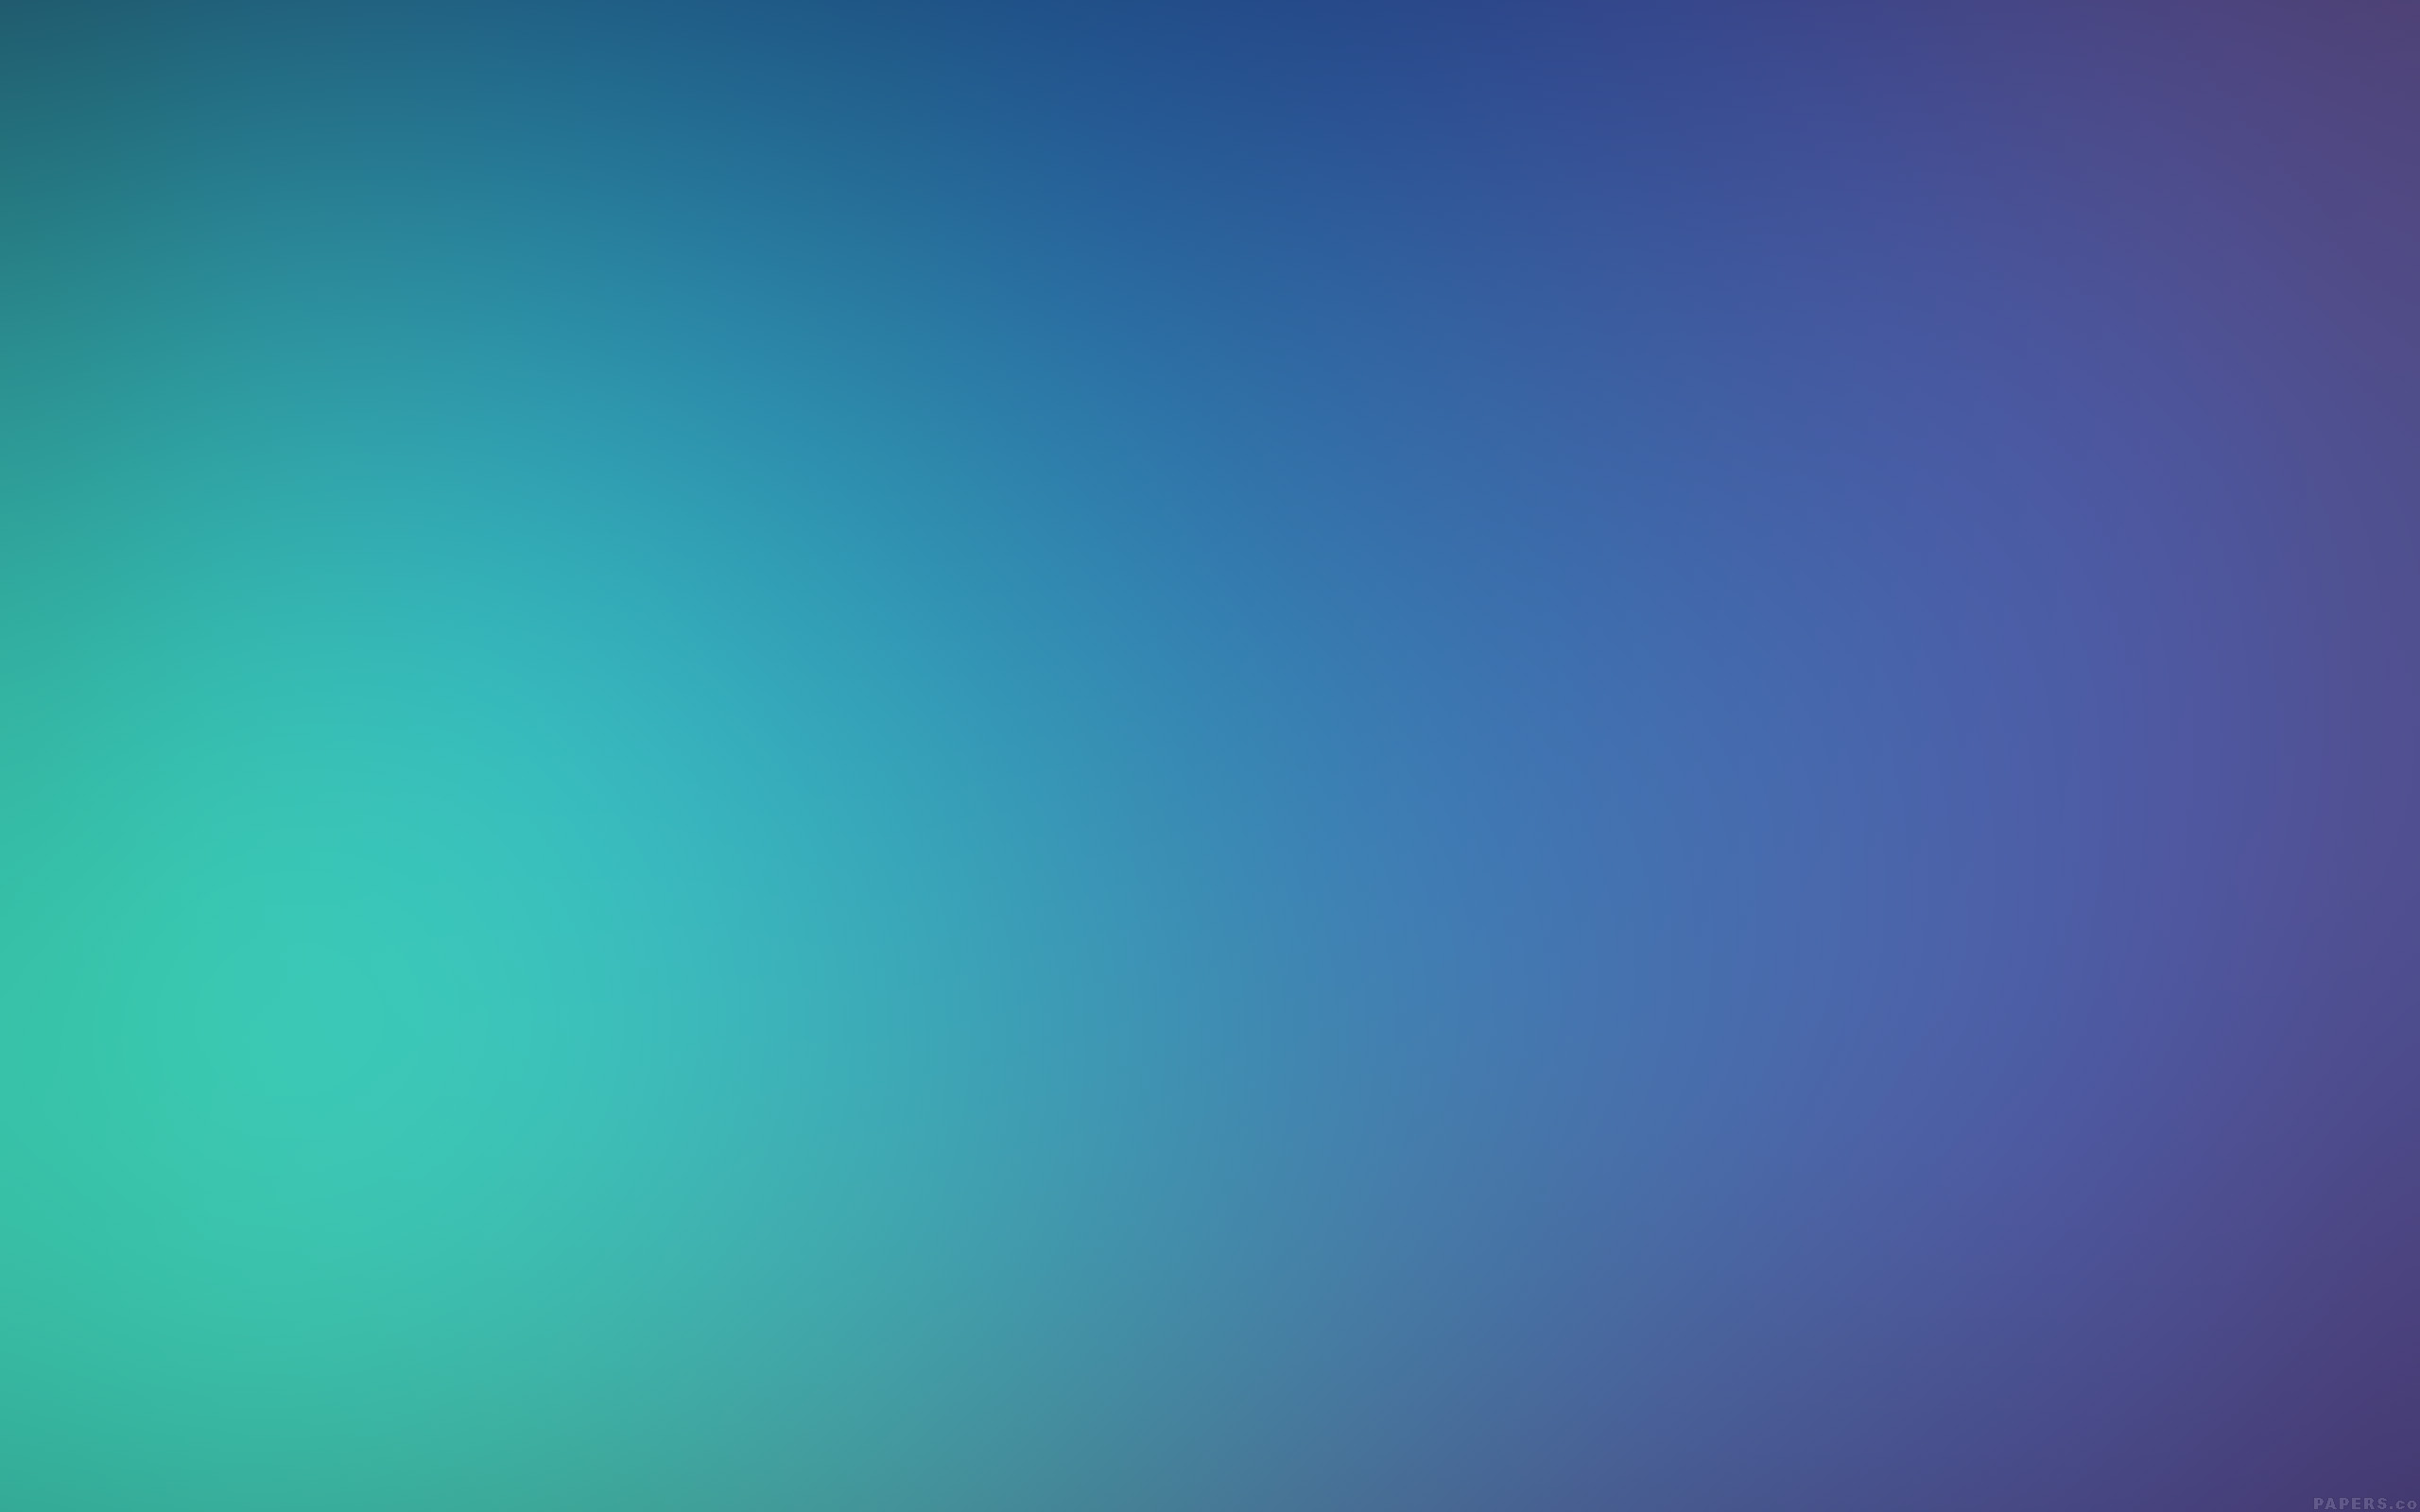 4k Car Wallpapers For Pc Sd69 Blue Windows Green Gradation Blur Papers Co